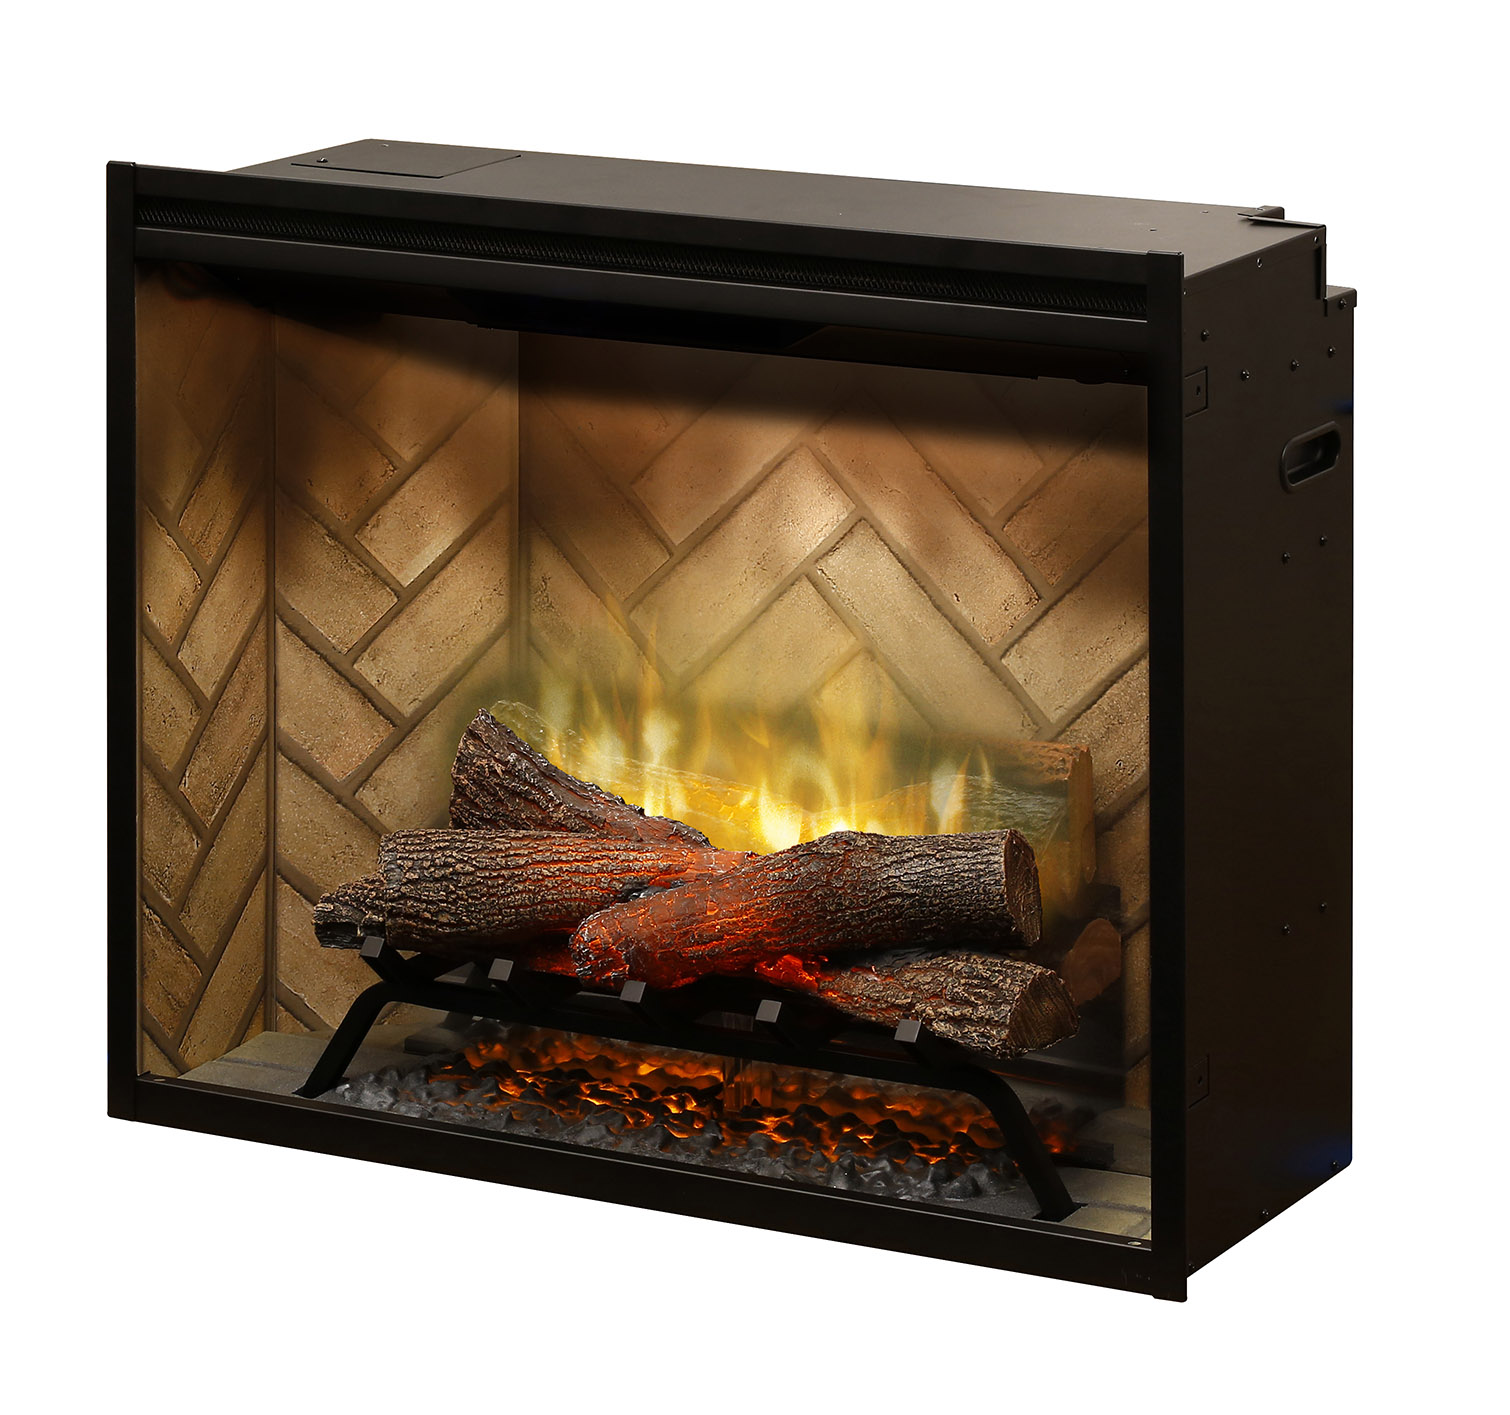 Dimplex Revillusion 30 Quot Built In Firebox Electric